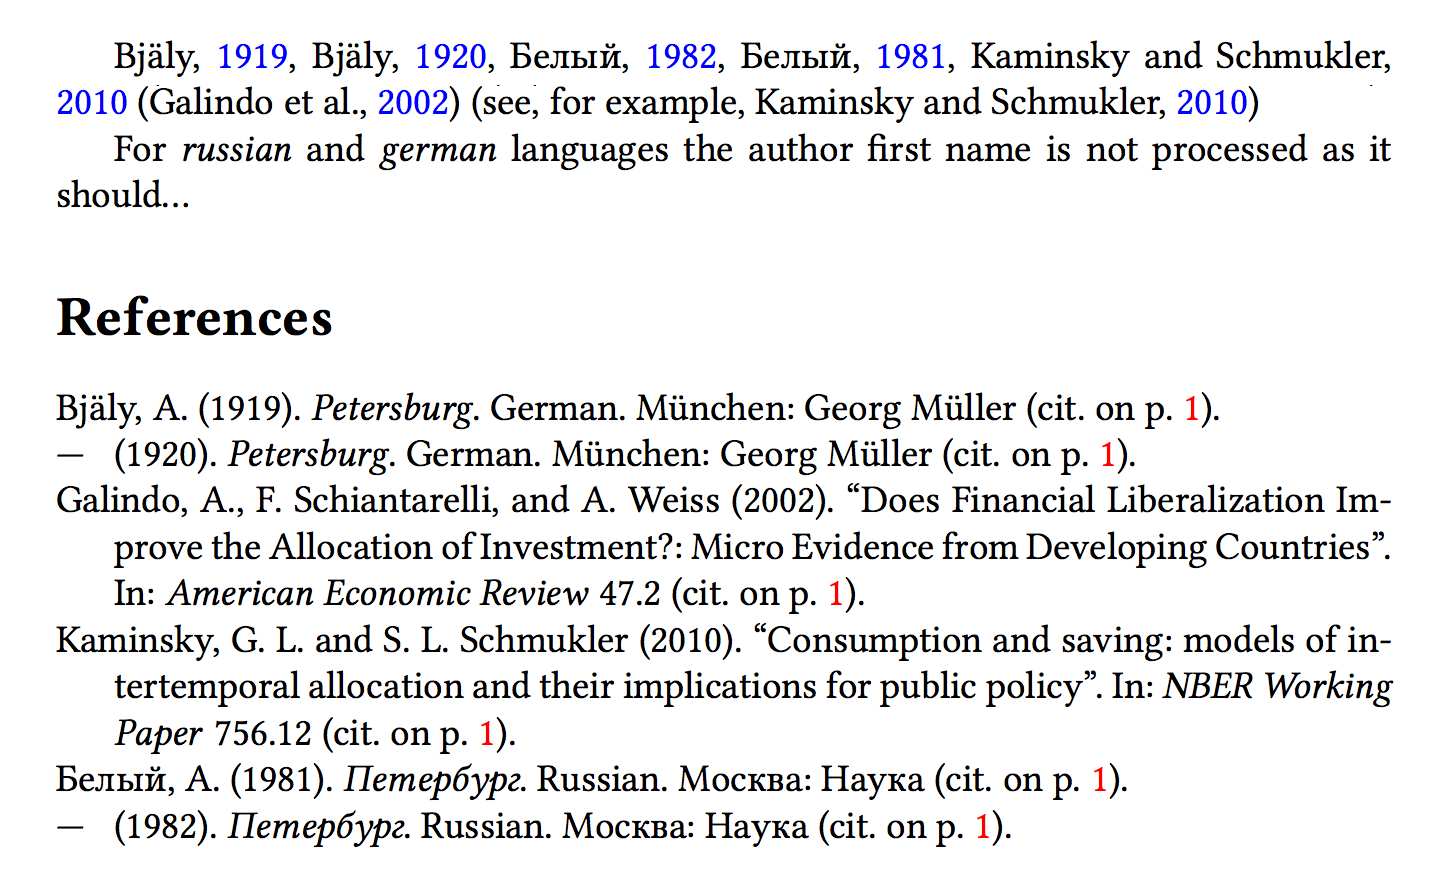 Xetex Cyrillic Bibliographic Entry Using Biblatex And